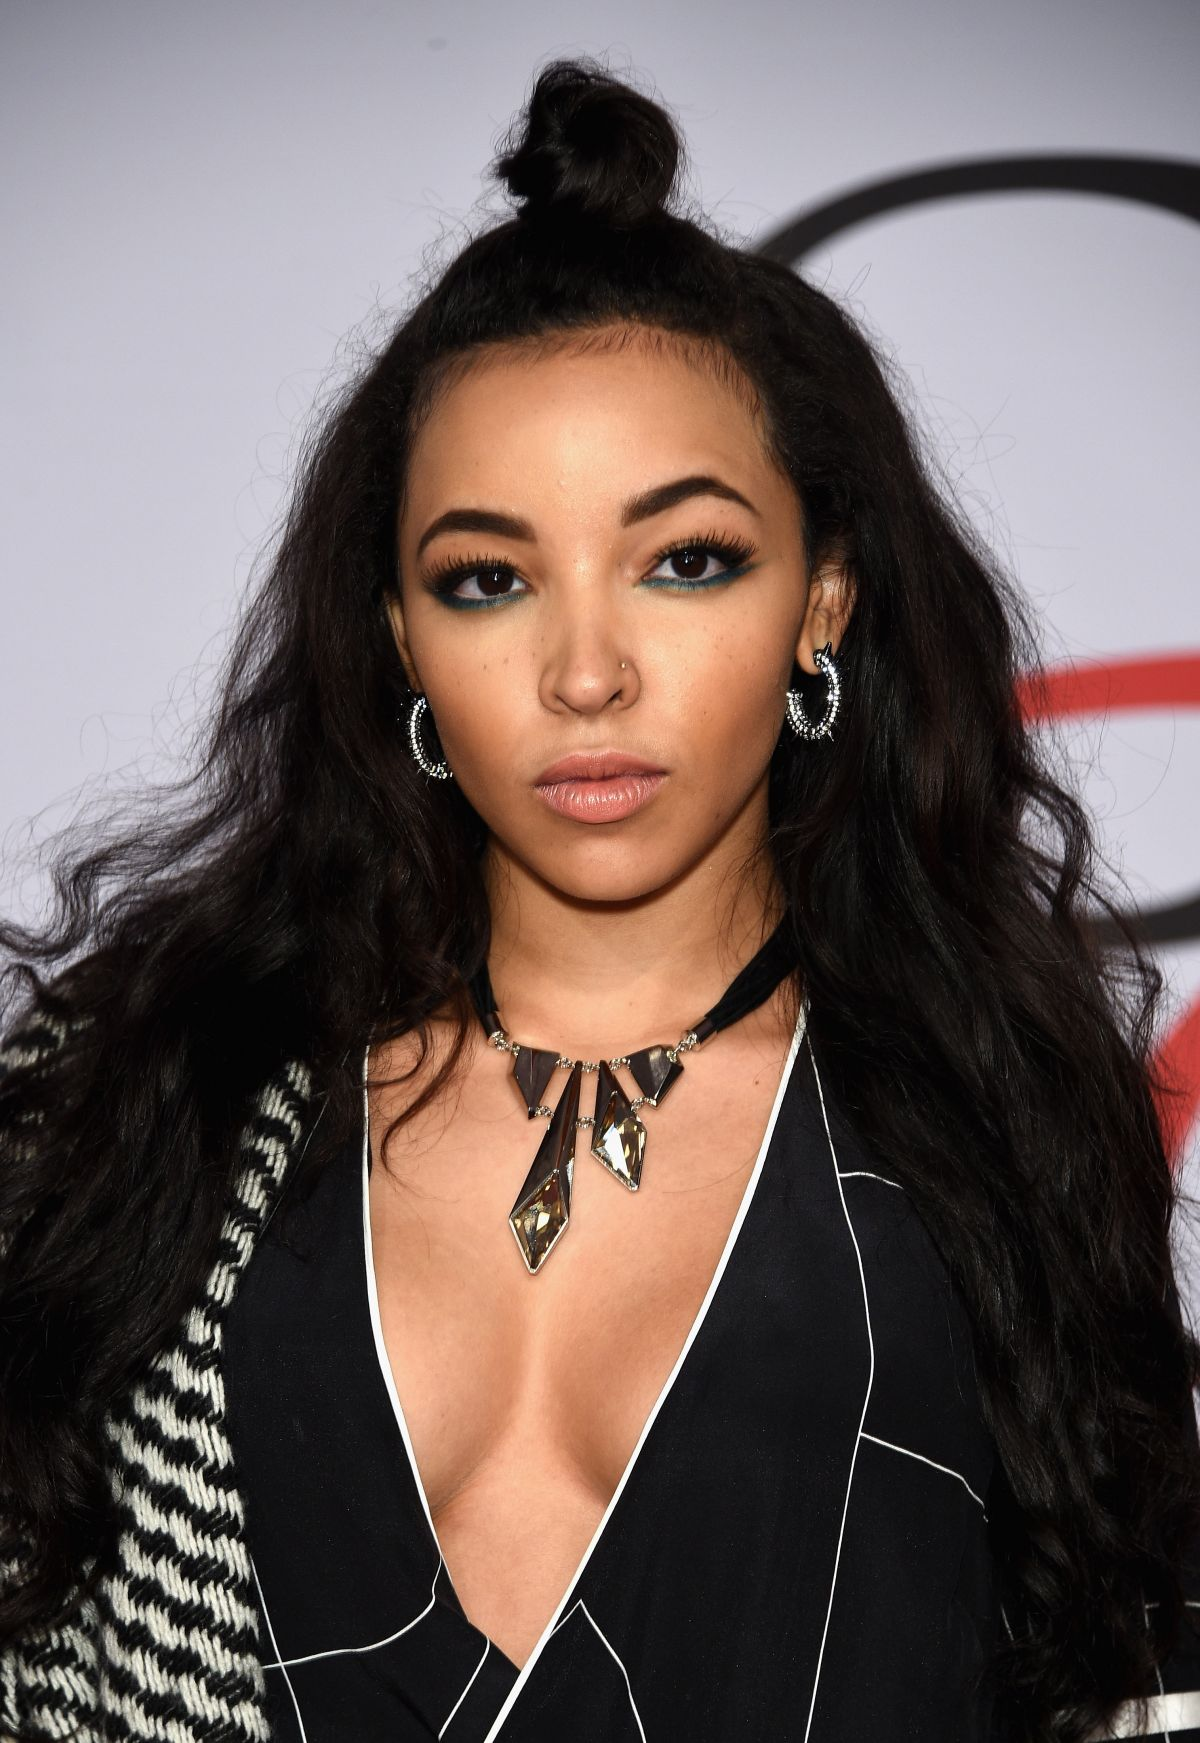 TINASHE at CFDA Fashion Awards 2015 in New York